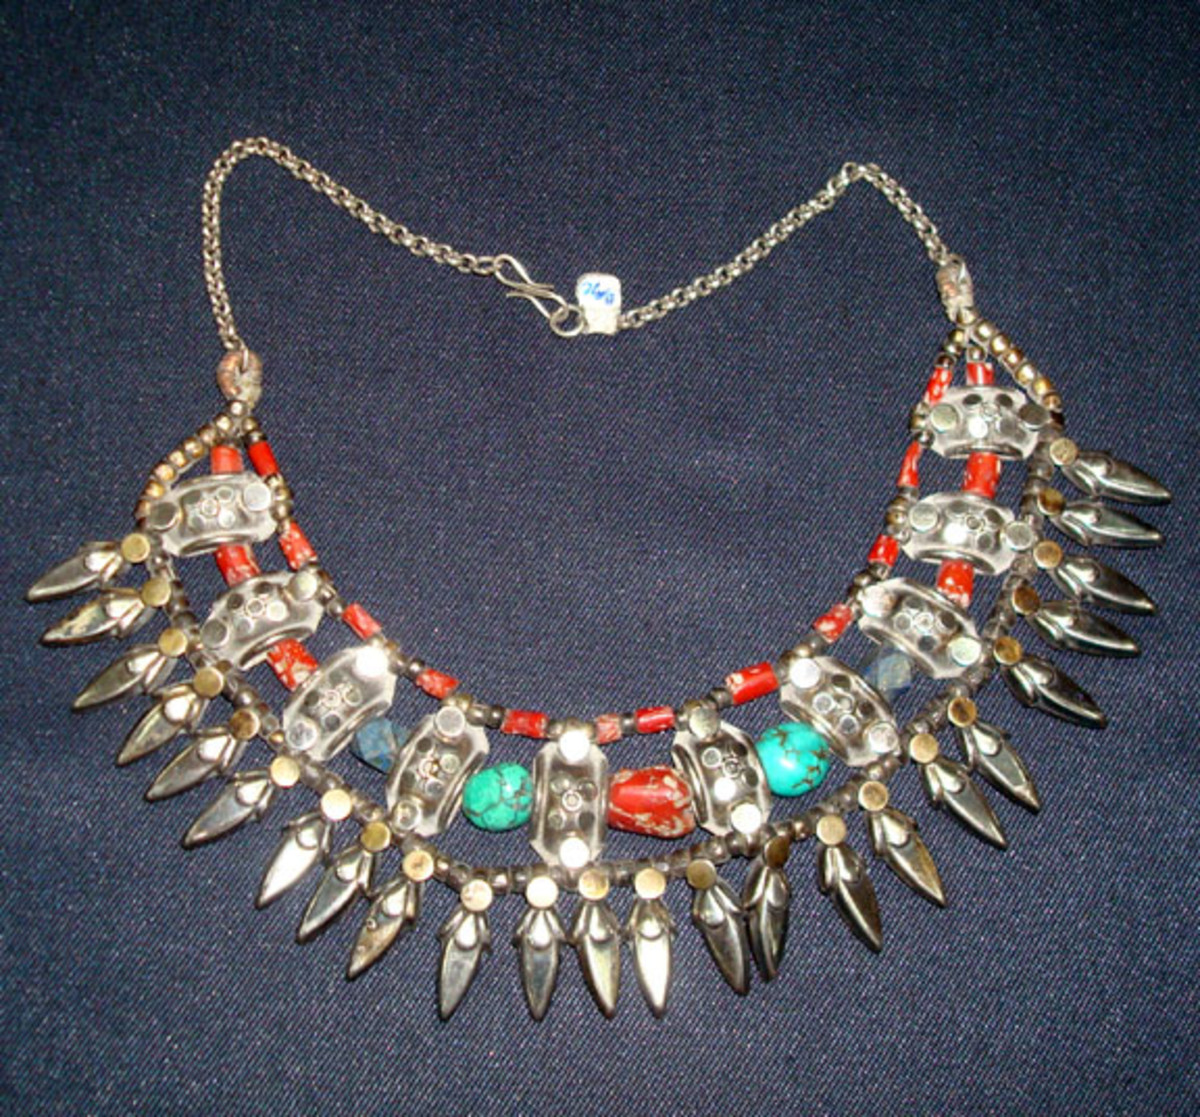 Ladhaki Necklace